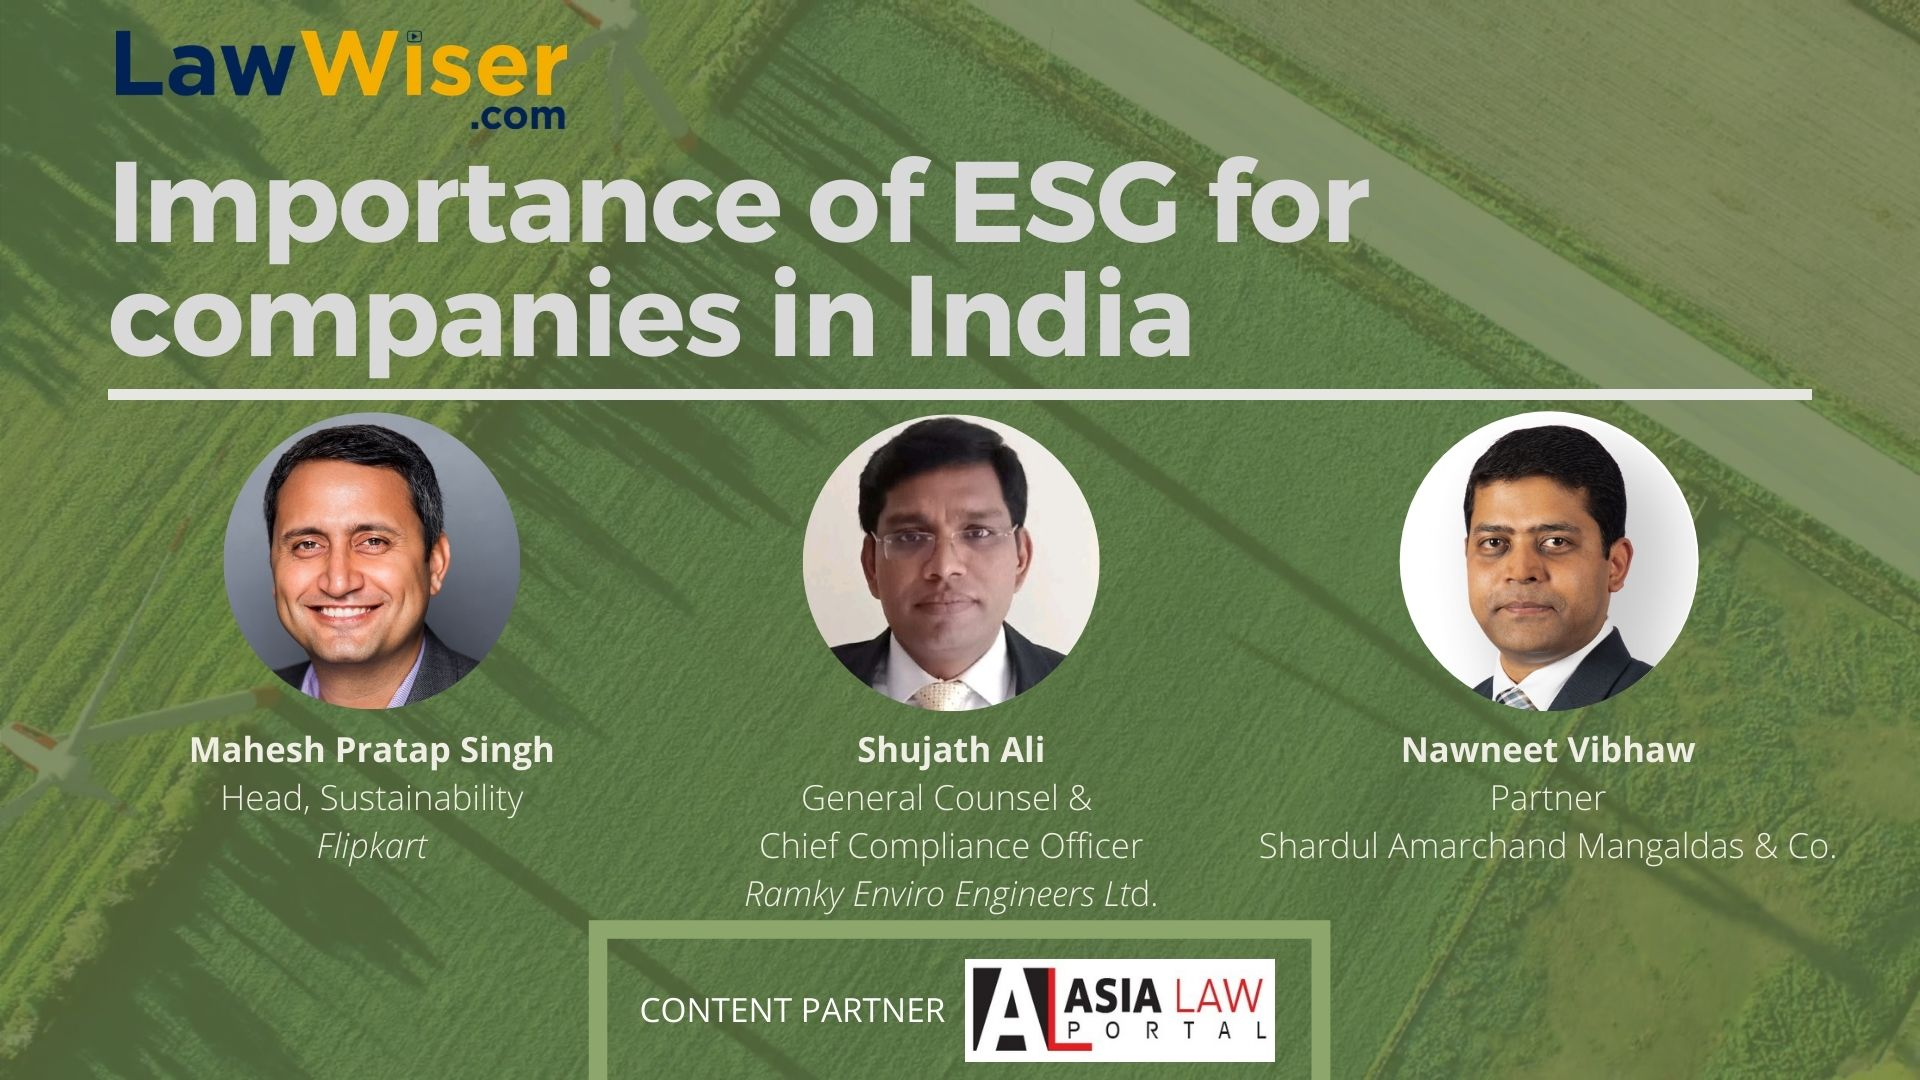 Importance of ESG (Environment, Social & Governance) for Companies in India | Full Feature